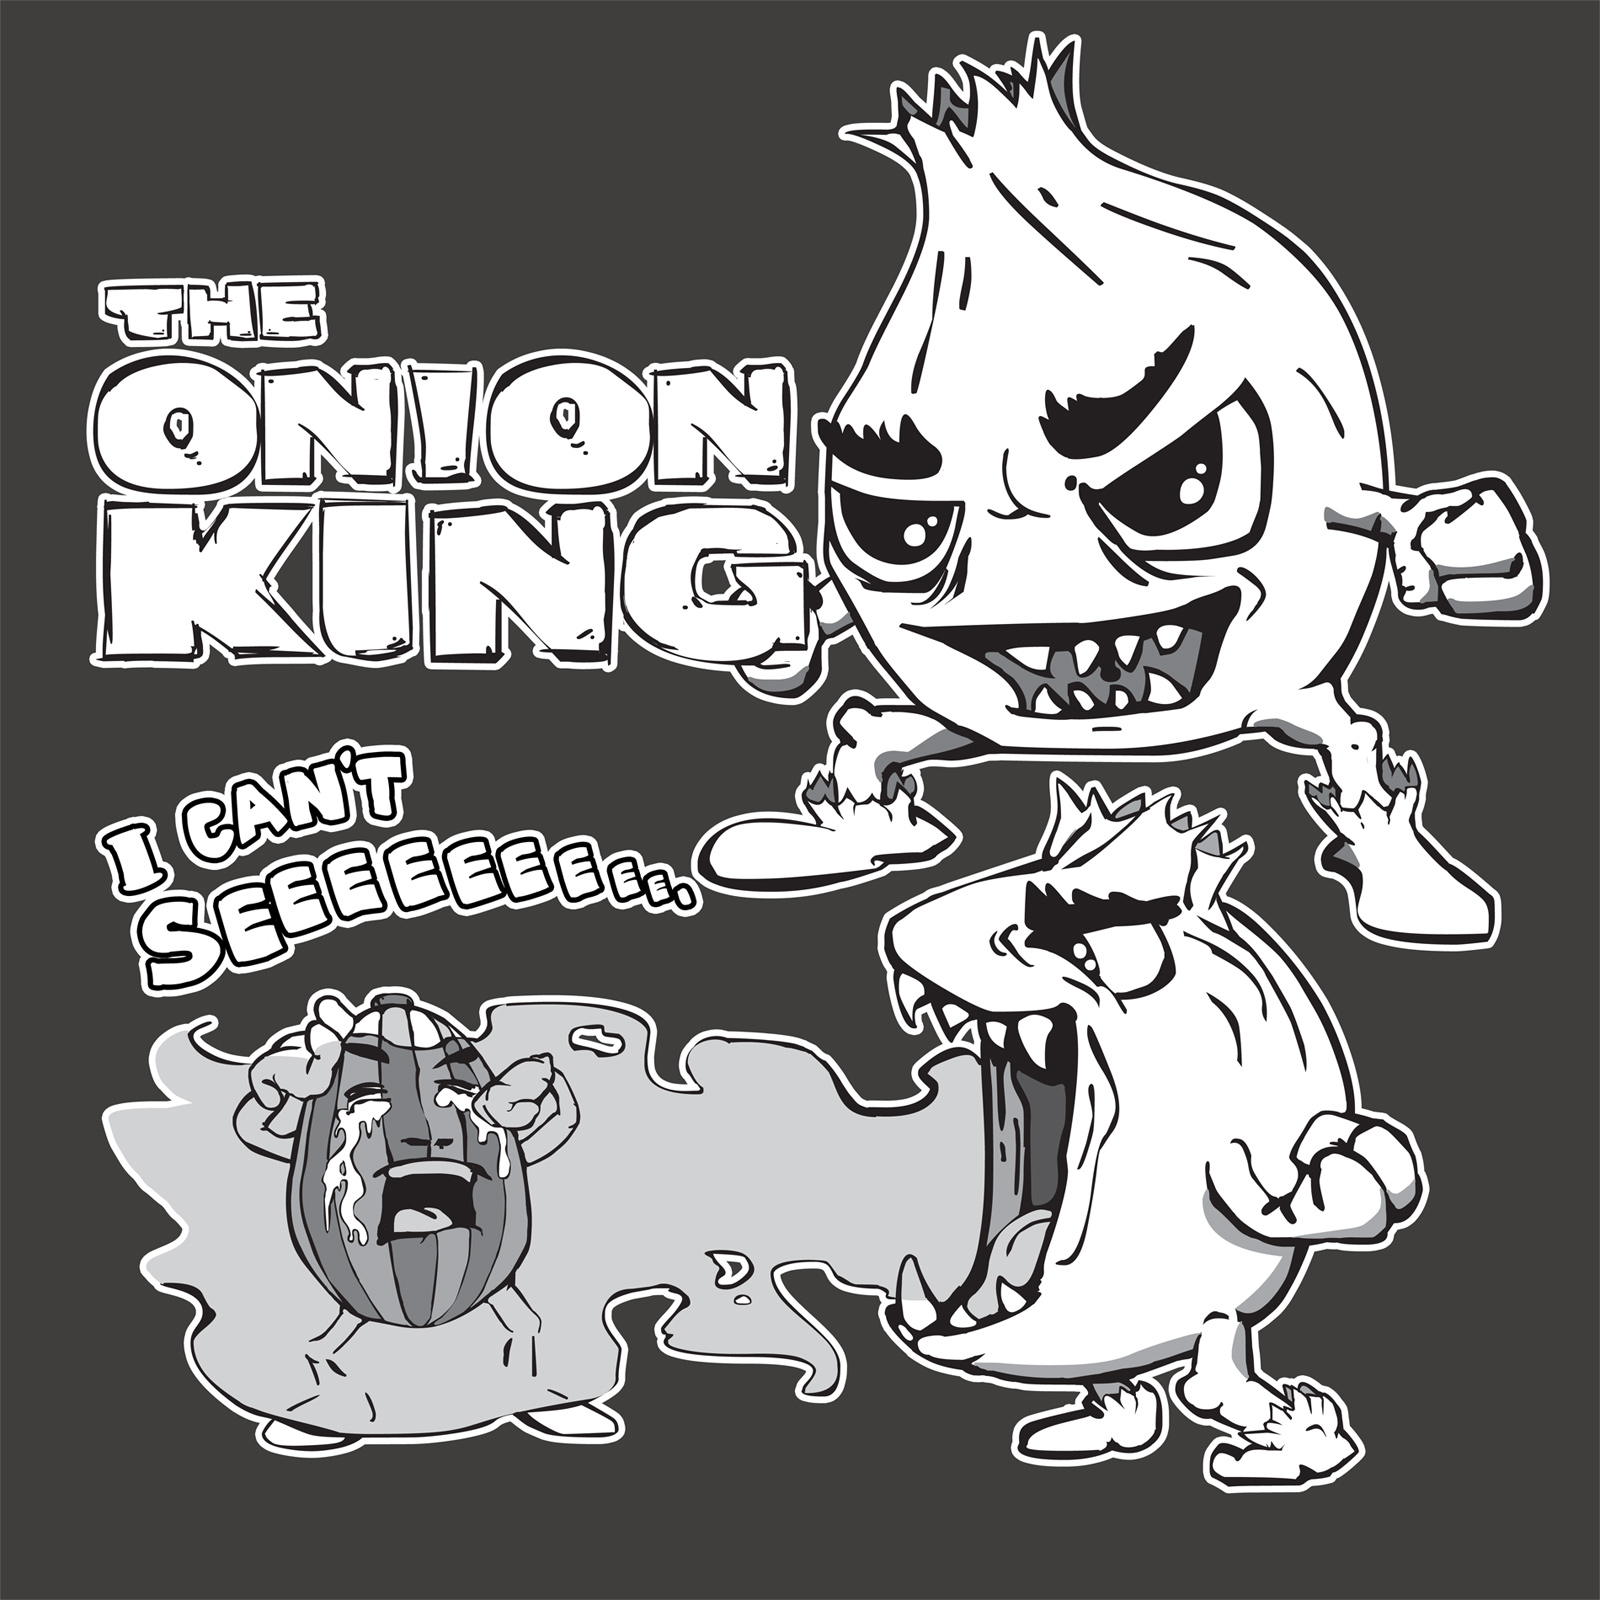 The Onion King